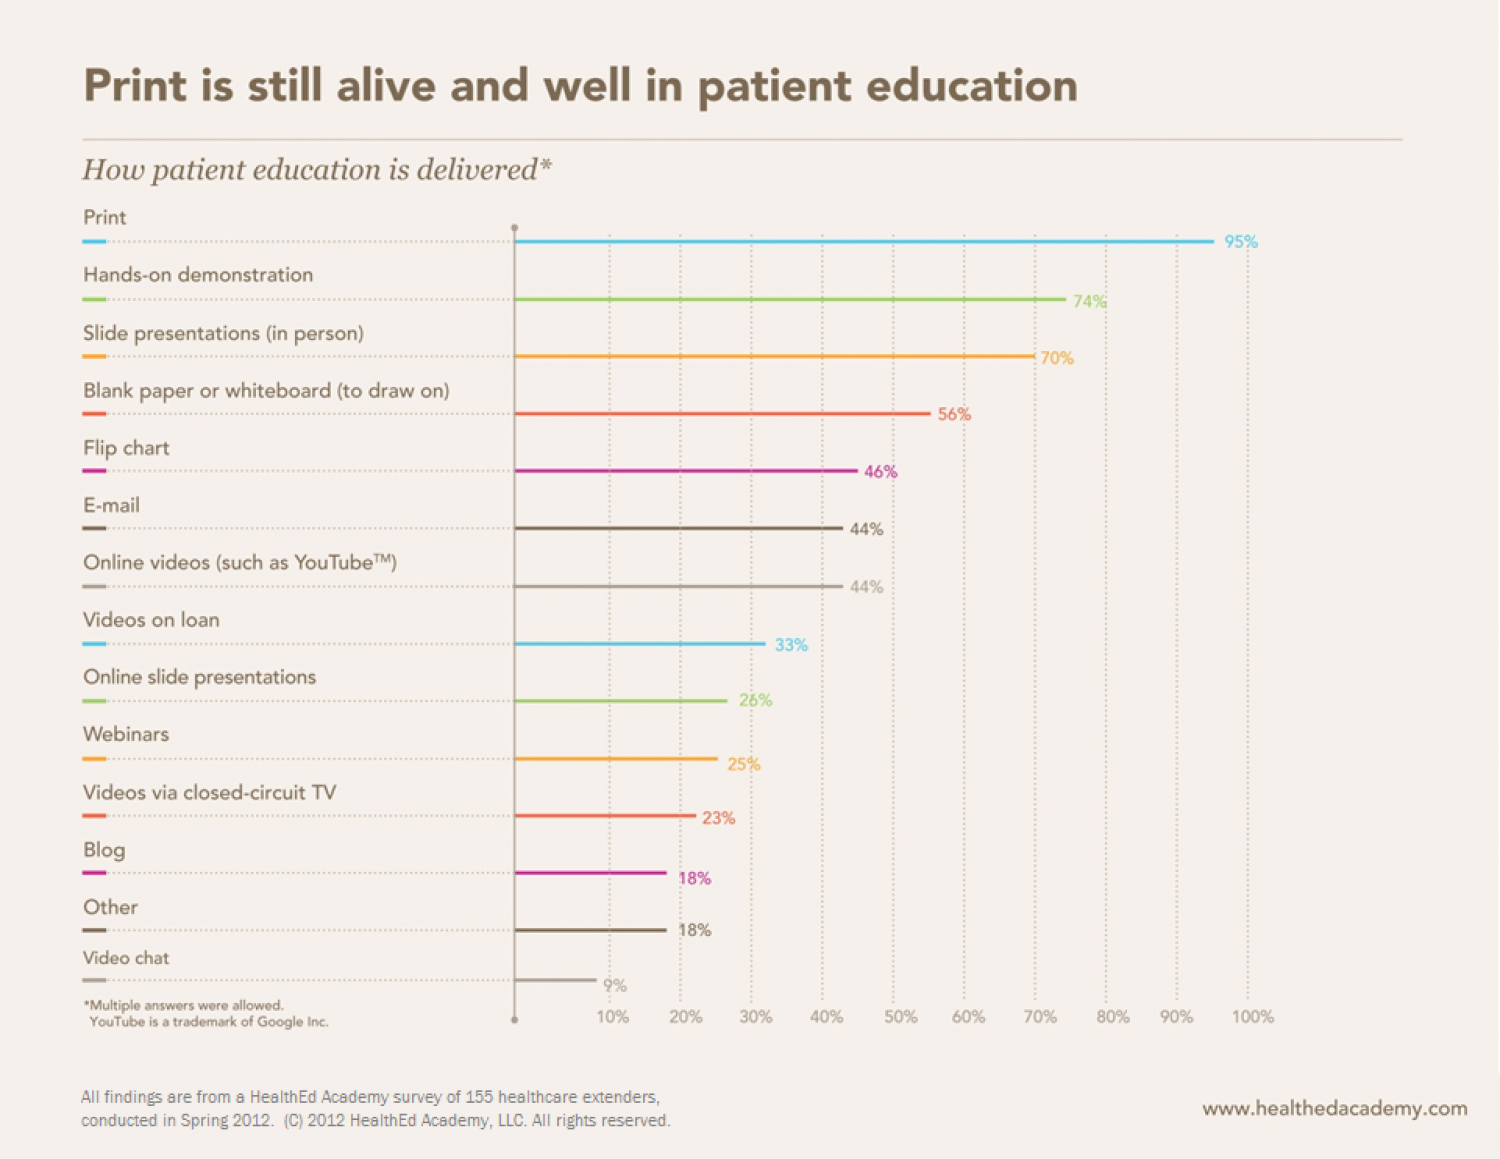 Print is still alive and well in patient education Infographic